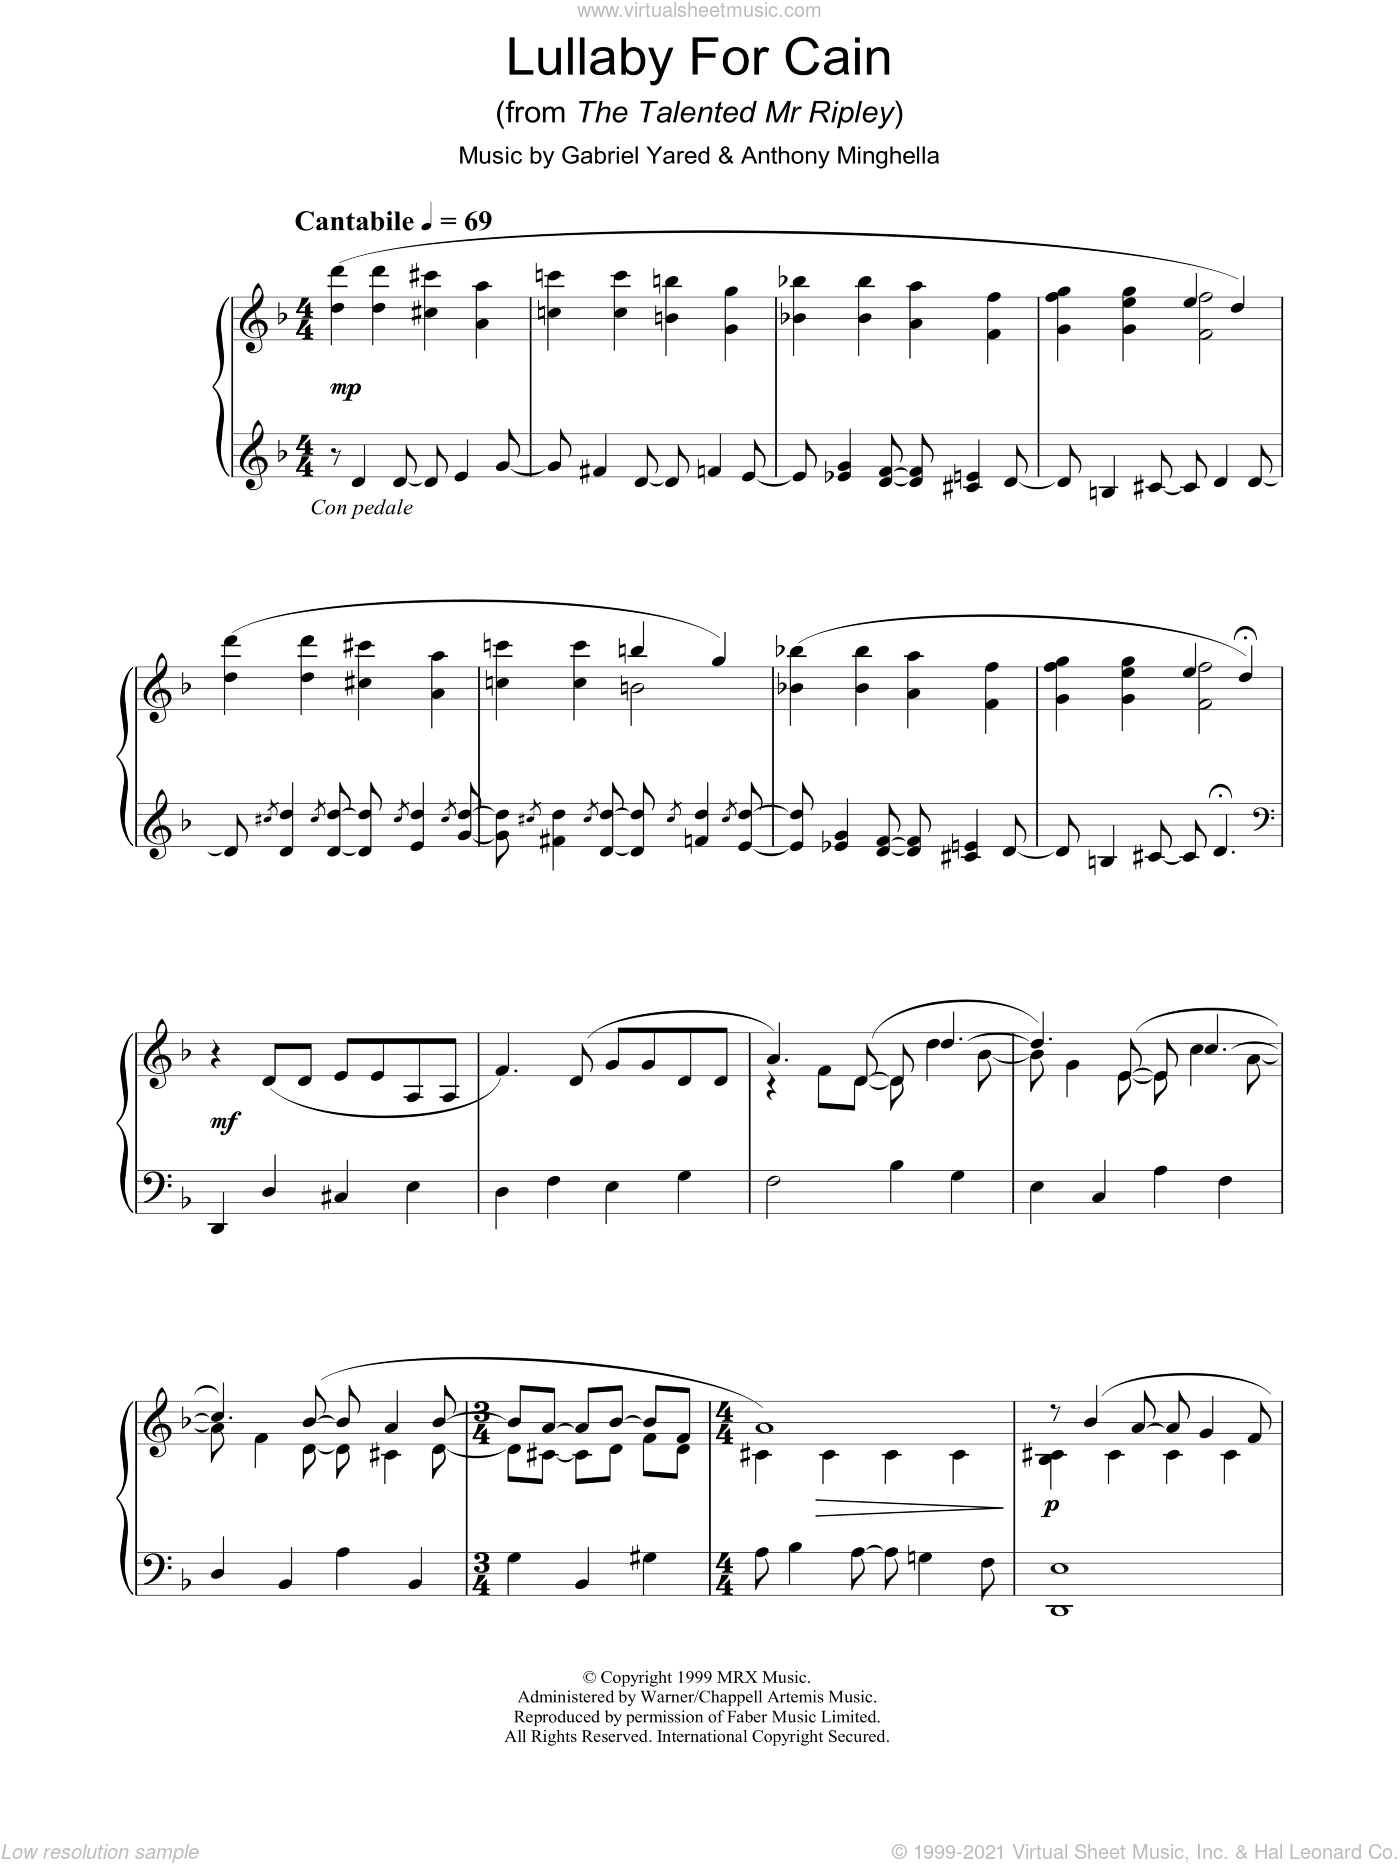 Lullaby For Cain sheet music for piano solo by Anthony Minghella and Gabriel Yared